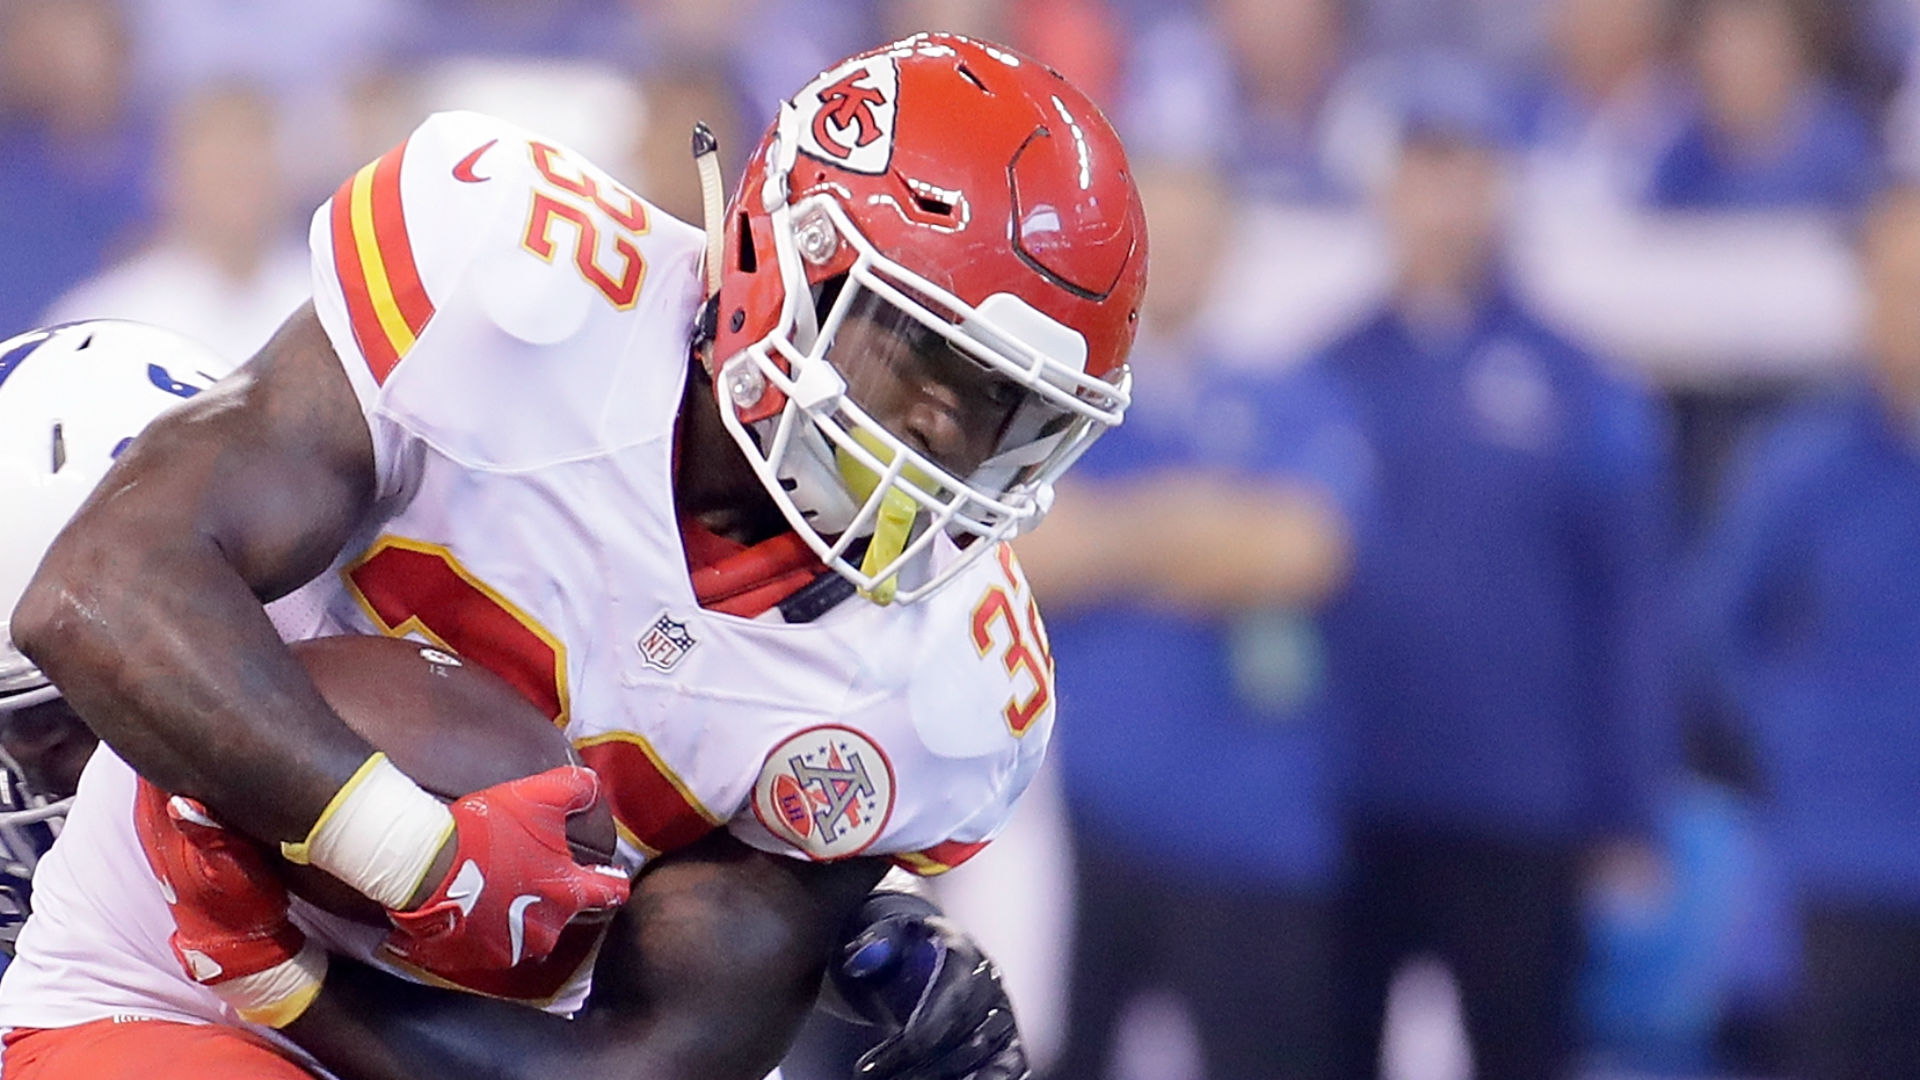 Spencer Ware Reportedly Will Miss Time with Knee Injury; LCL, PCL Damaged